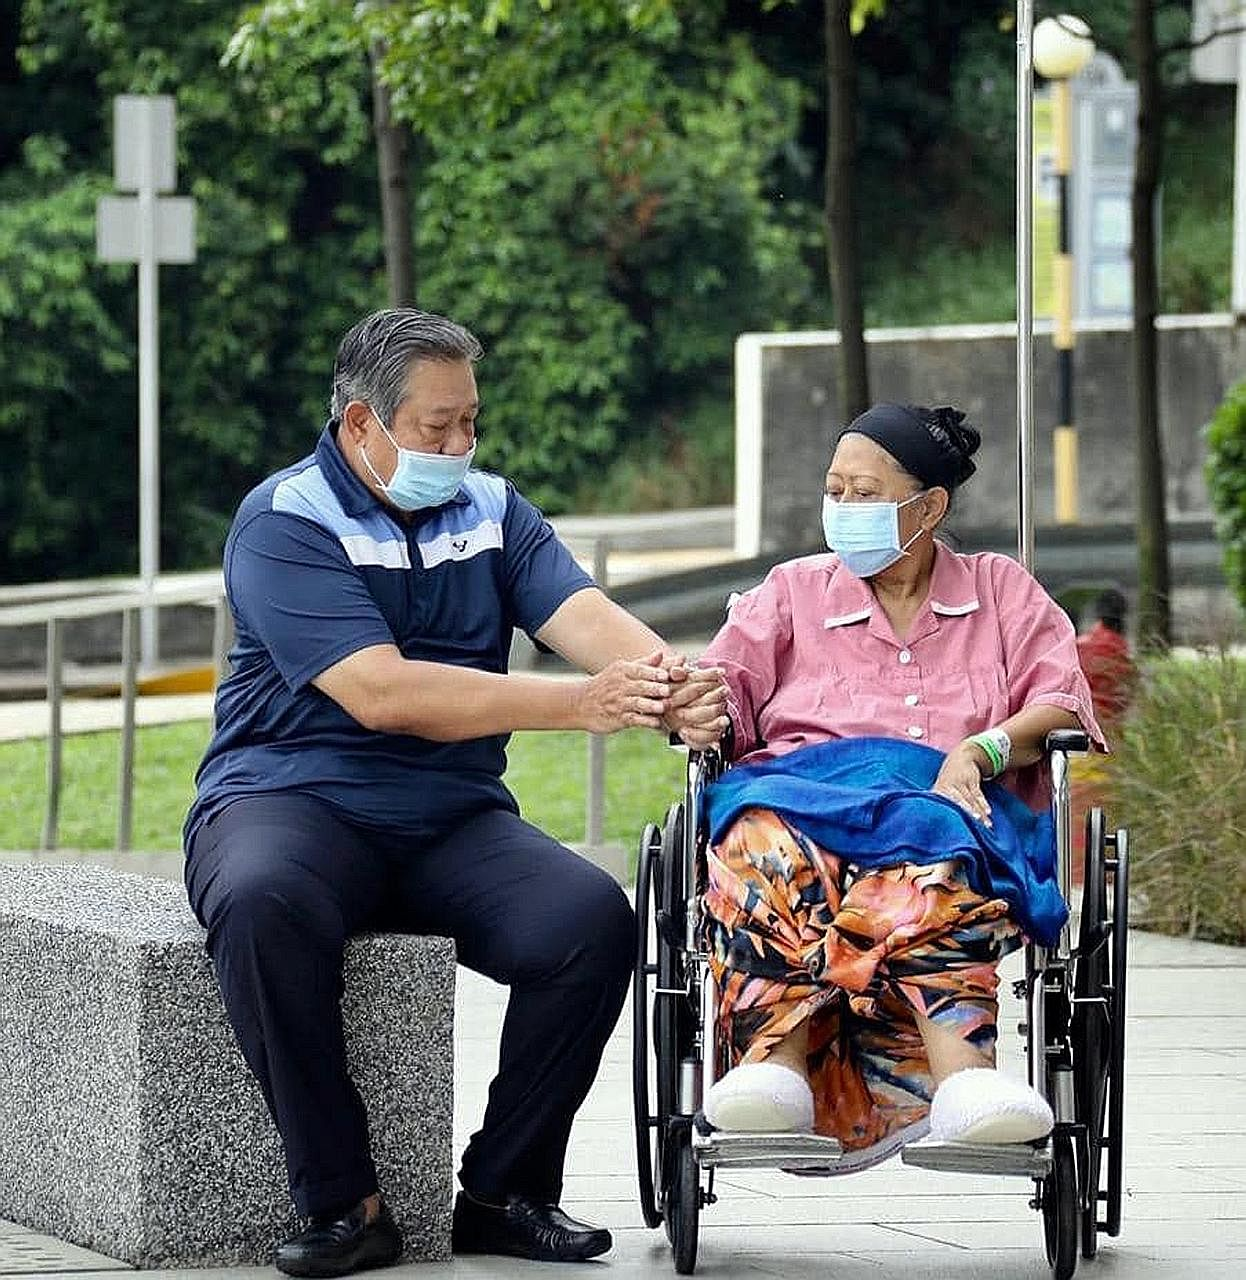 Mrs Ani Yudhoyono shared her struggle with cancer through Instagram. She last posted a picture of herself with her husband outside the hospital ward on May 16.